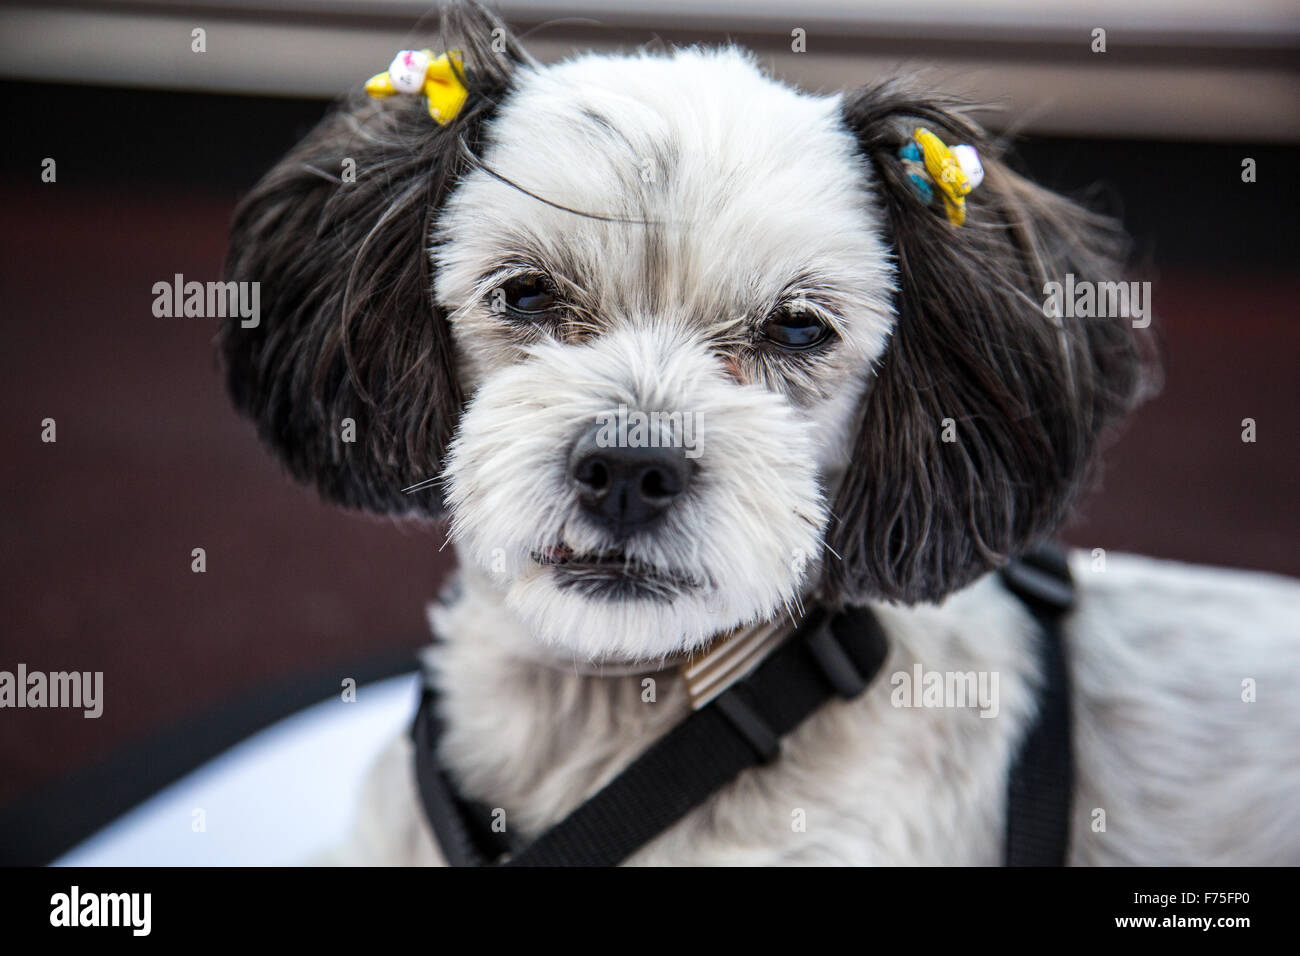 Sweet little pup with yellow bows - Stock Image